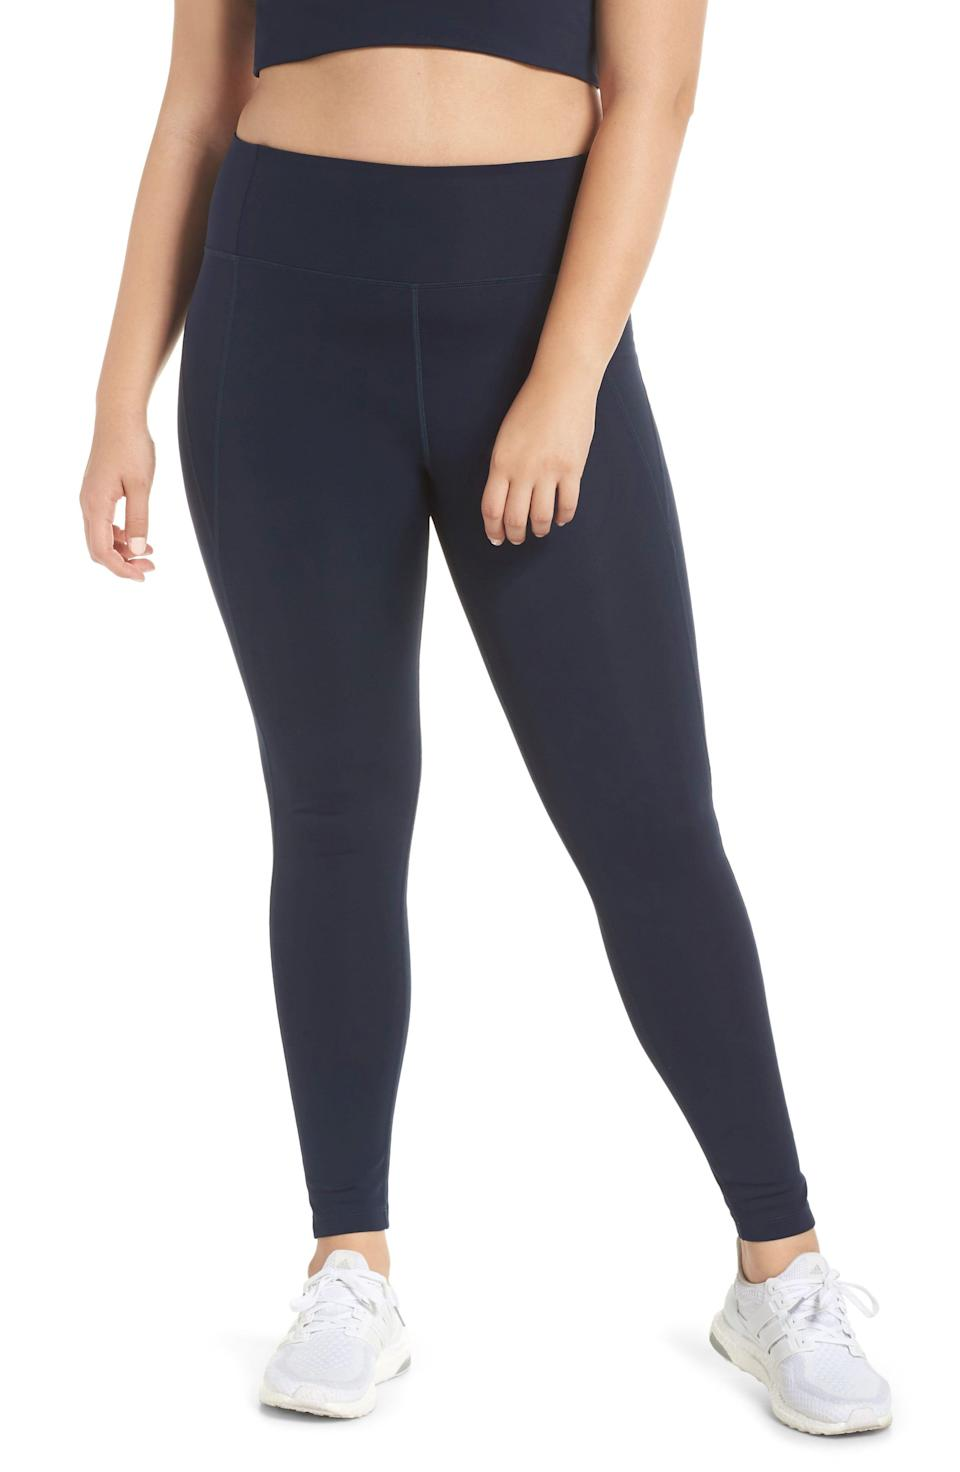 """<p><strong>Girlfriend Collective</strong></p><p>nordstrom.com</p><p><strong>$68.00</strong></p><p><a href=""""https://go.redirectingat.com?id=74968X1596630&url=https%3A%2F%2Fshop.nordstrom.com%2Fs%2Fgirlfriend-collective-high-waist-full-length-leggings%2F5075272&sref=https%3A%2F%2Fwww.goodhousekeeping.com%2Fhealth-products%2Fg4042%2Fbest-workout-leggings%2F"""" rel=""""nofollow noopener"""" target=""""_blank"""" data-ylk=""""slk:Shop Now"""" class=""""link rapid-noclick-resp"""">Shop Now</a></p><p>Leggings made of recycled plastic bottles has been gaining popularity over the past several years, but sometimes the quality of these leggings can be a let down. This style proves you don't have to sacrifice performance: The fabric uses about 25 plastic bottles per pair <em>and</em> it has a cult-like following from fans that call these their favorite leggings ever. The brand offers a <a href=""""https://go.redirectingat.com?id=74968X1596630&url=https%3A%2F%2Fwww.girlfriend.com%2Fproducts%2Fblack-compressive-high-rise-legging&sref=https%3A%2F%2Fwww.goodhousekeeping.com%2Fhealth-products%2Fg4042%2Fbest-workout-leggings%2F"""" rel=""""nofollow noopener"""" target=""""_blank"""" data-ylk=""""slk:variety of options"""" class=""""link rapid-noclick-resp"""">variety of options</a> for this style, including lots of colors, three inseam lengths, and sizes ranging from XXS through 6XL. Though they're not technically compression leggings, <strong>the style has more of a compressive, snug fit, which is good for high-impact activities.</strong></p>"""